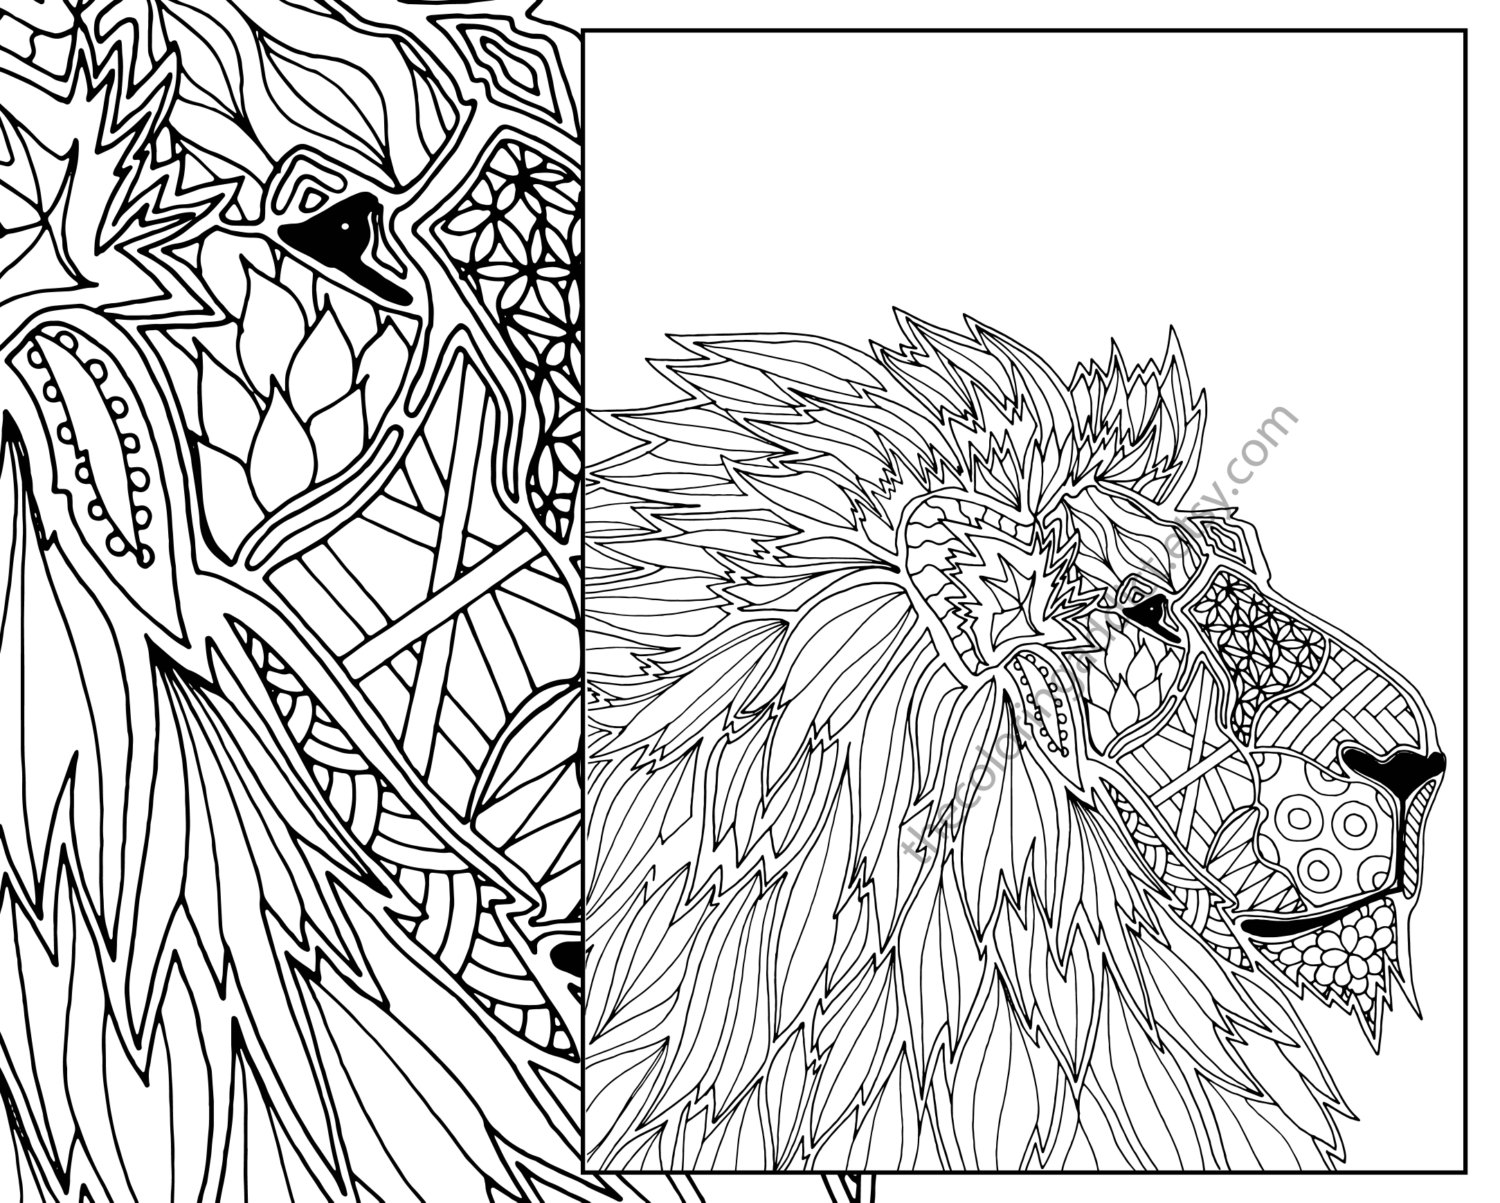 Adult Coloring Pages Lion At Getdrawings Com Free For Personal Use